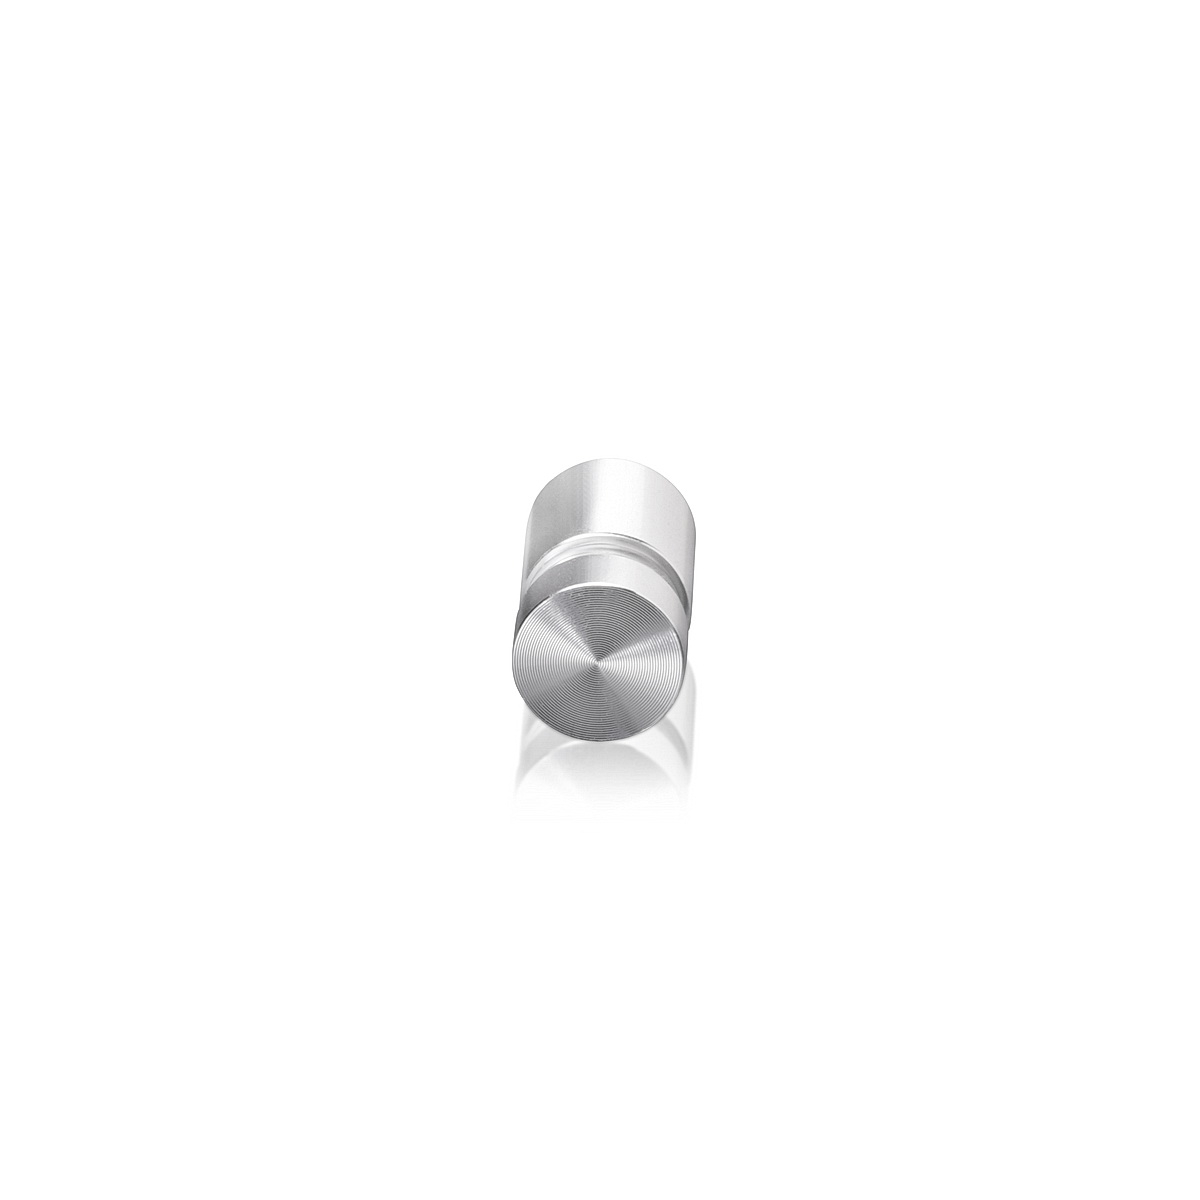 Tamper Proof Aluminum Flat Head Standoffs, Diameter: 1/2'', Standoff: 1/2'', Clear Anodized Shiny Finish